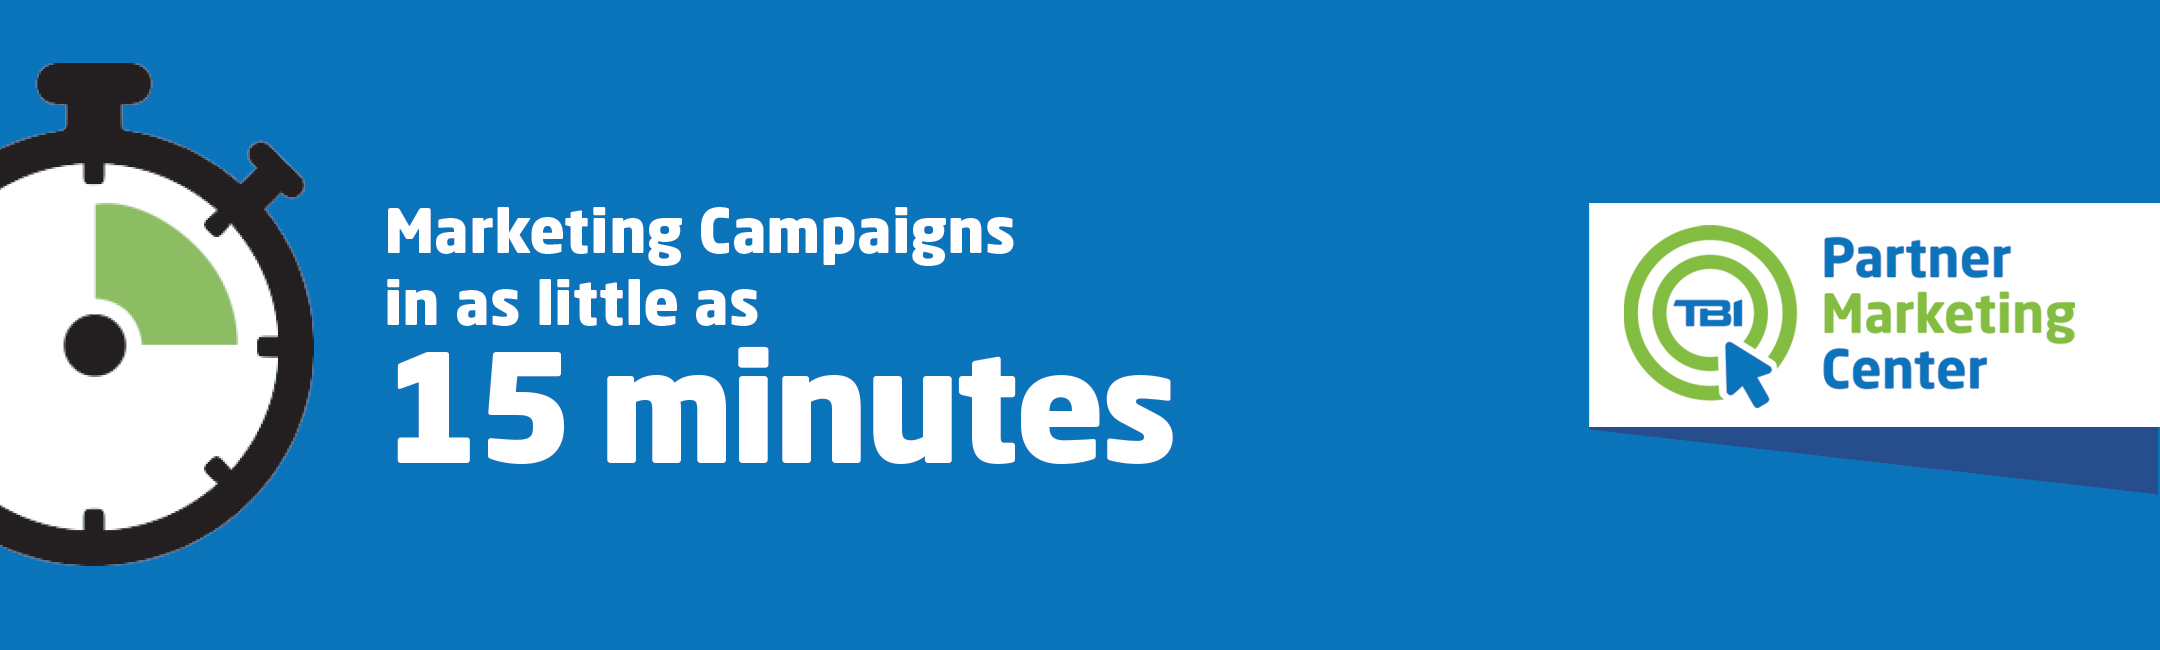 PMC - Marketing Campaigns in as little as 15 minutes